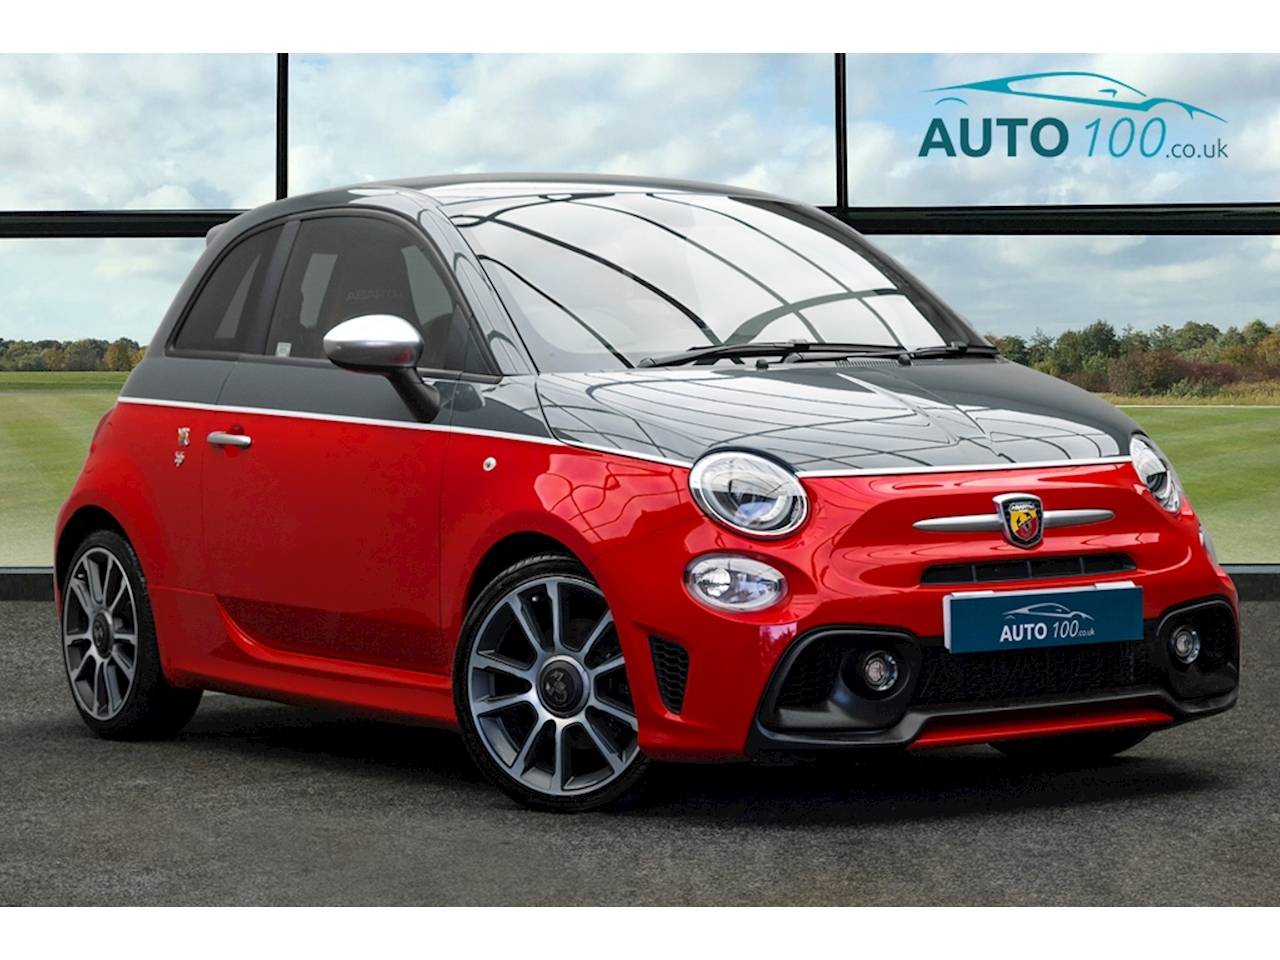 Abarth 1.4 T-Jet Turismo Hatchback 3dr Petrol Manual (165 bhp)